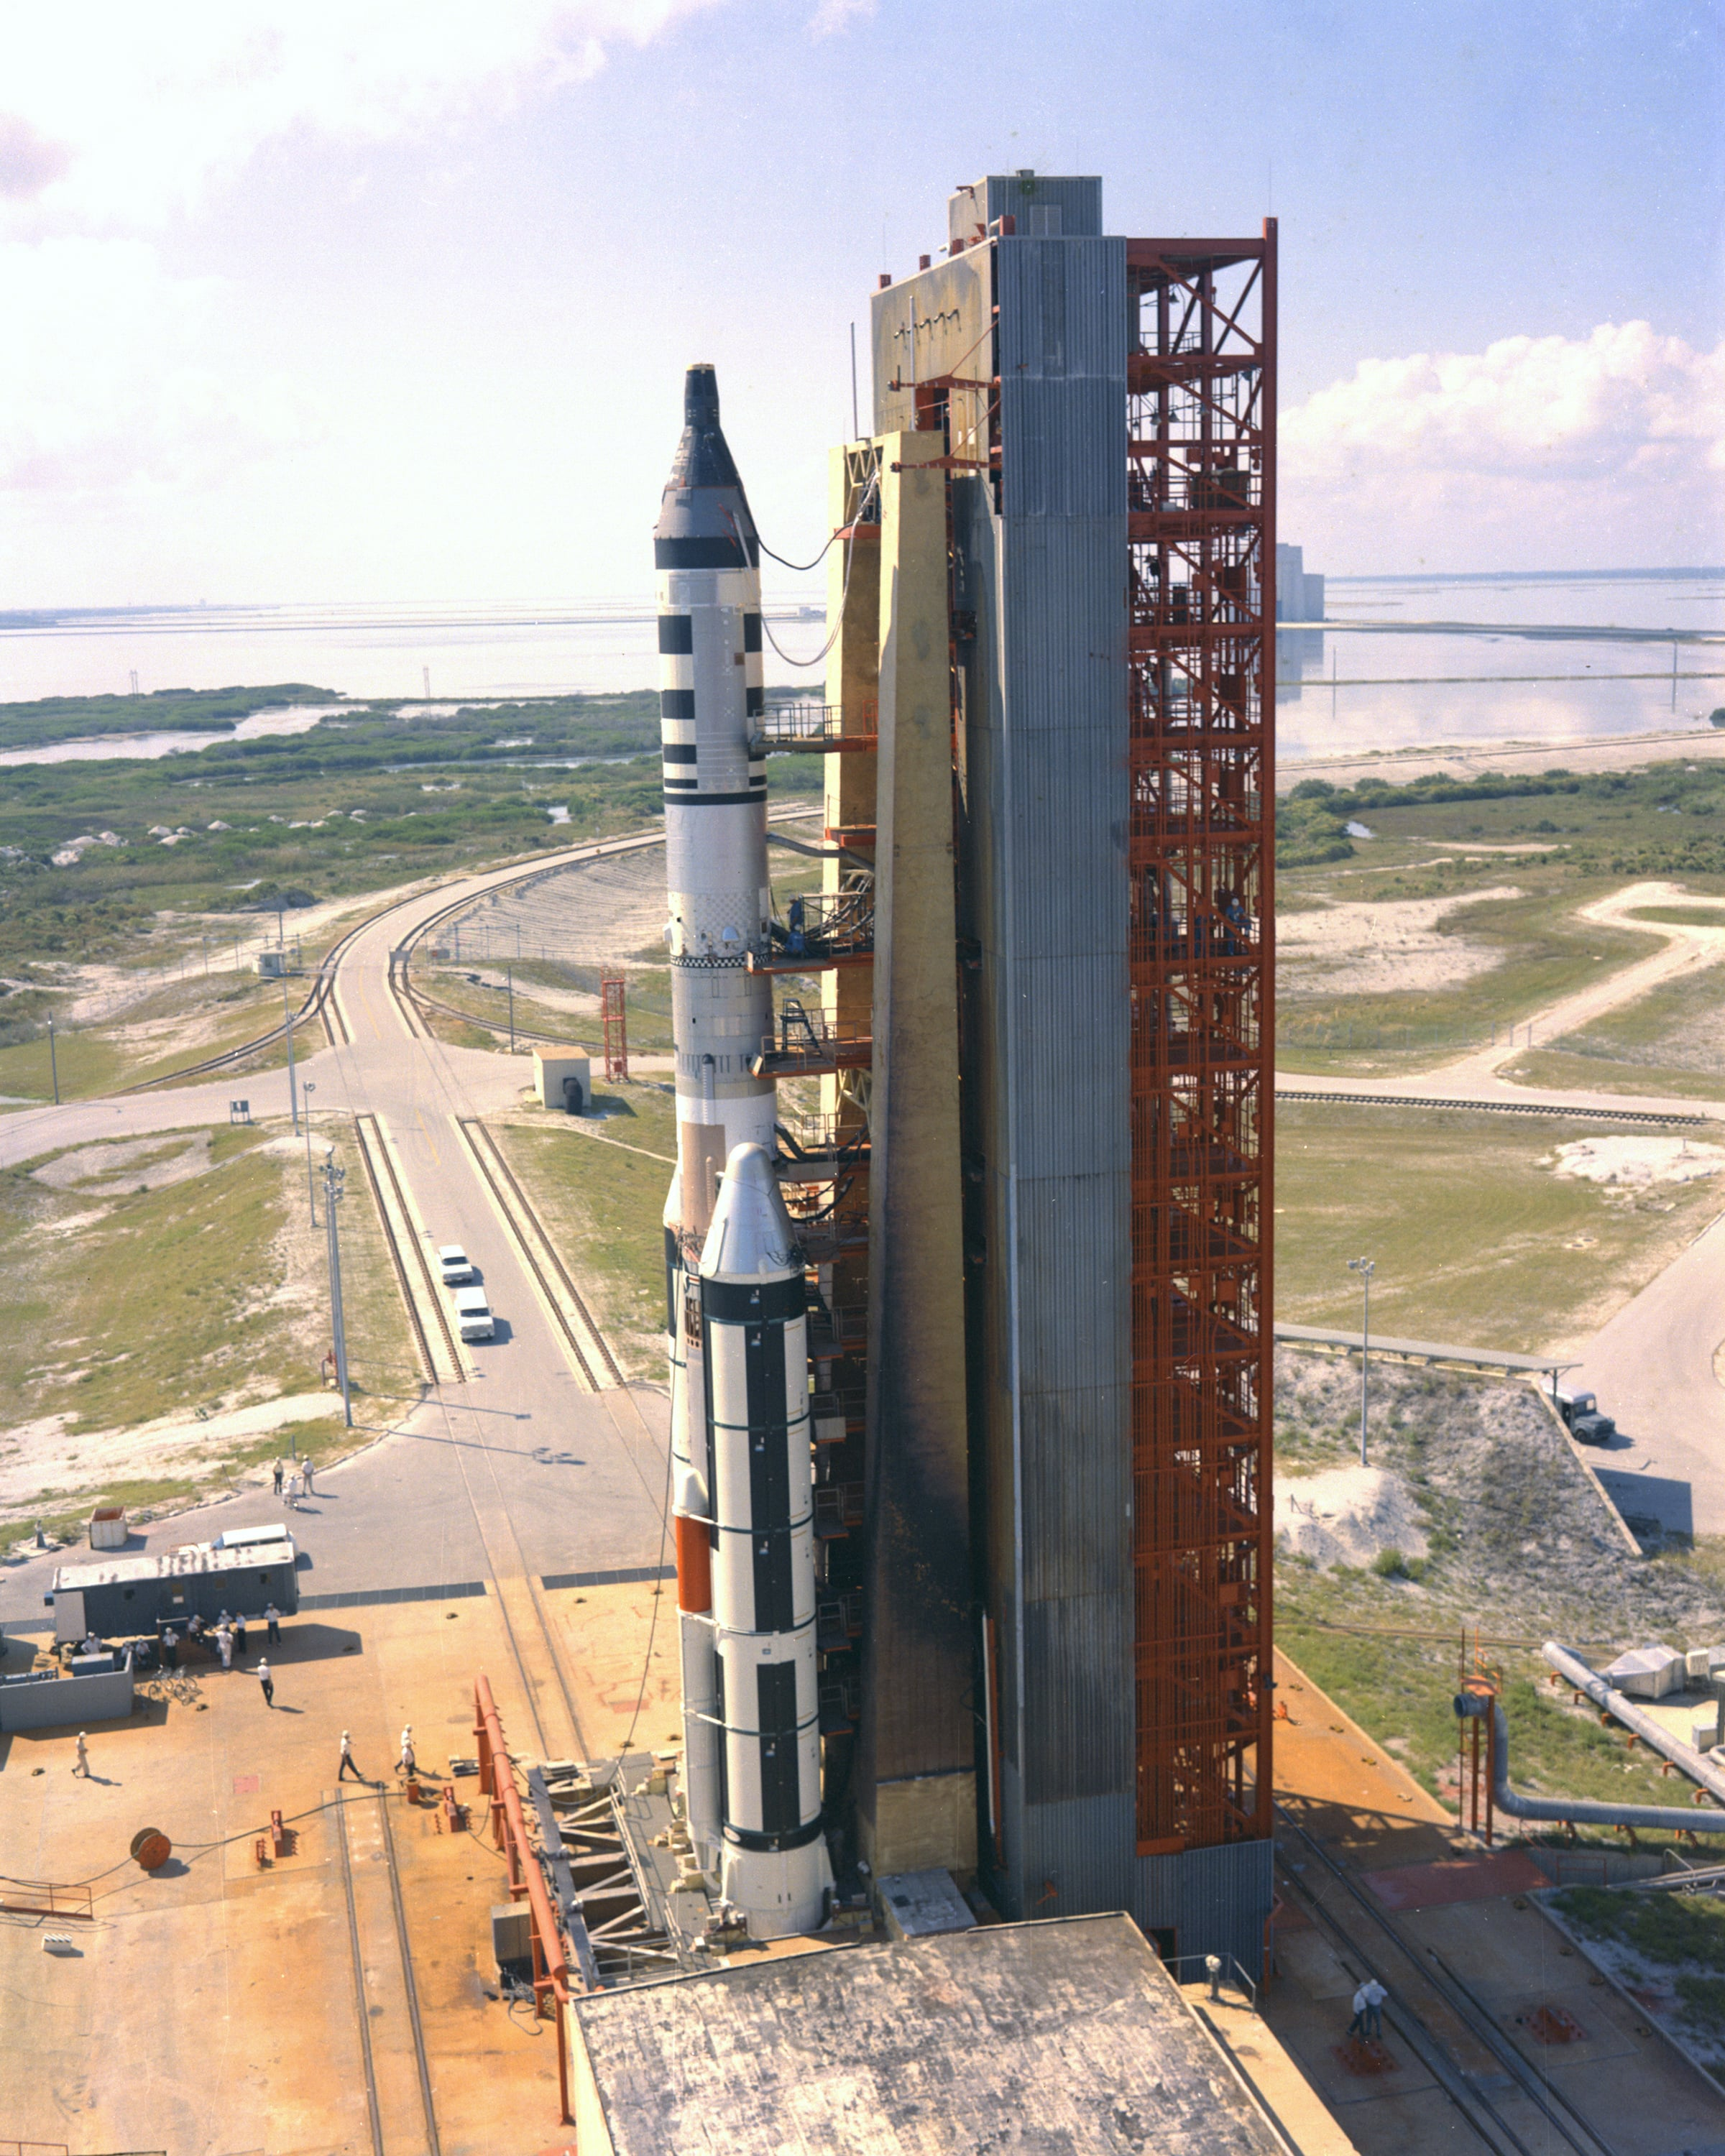 Titan IIIC number 9 is shown at Space Launch Complex 40 at Cape Canaveral Air Force Station. It was launched on November 3, 1966, as a test of the rocket. It also carried the Gemini 2 spacecraft, on its second suborbital flight to evaluate its heat shield as modified for MOL, and a simulated MOL canister carrying Air Force experiments. Note the similarity of the its umbilical tower to that in Painting #7. (Photo PL66C-76206, USAF)